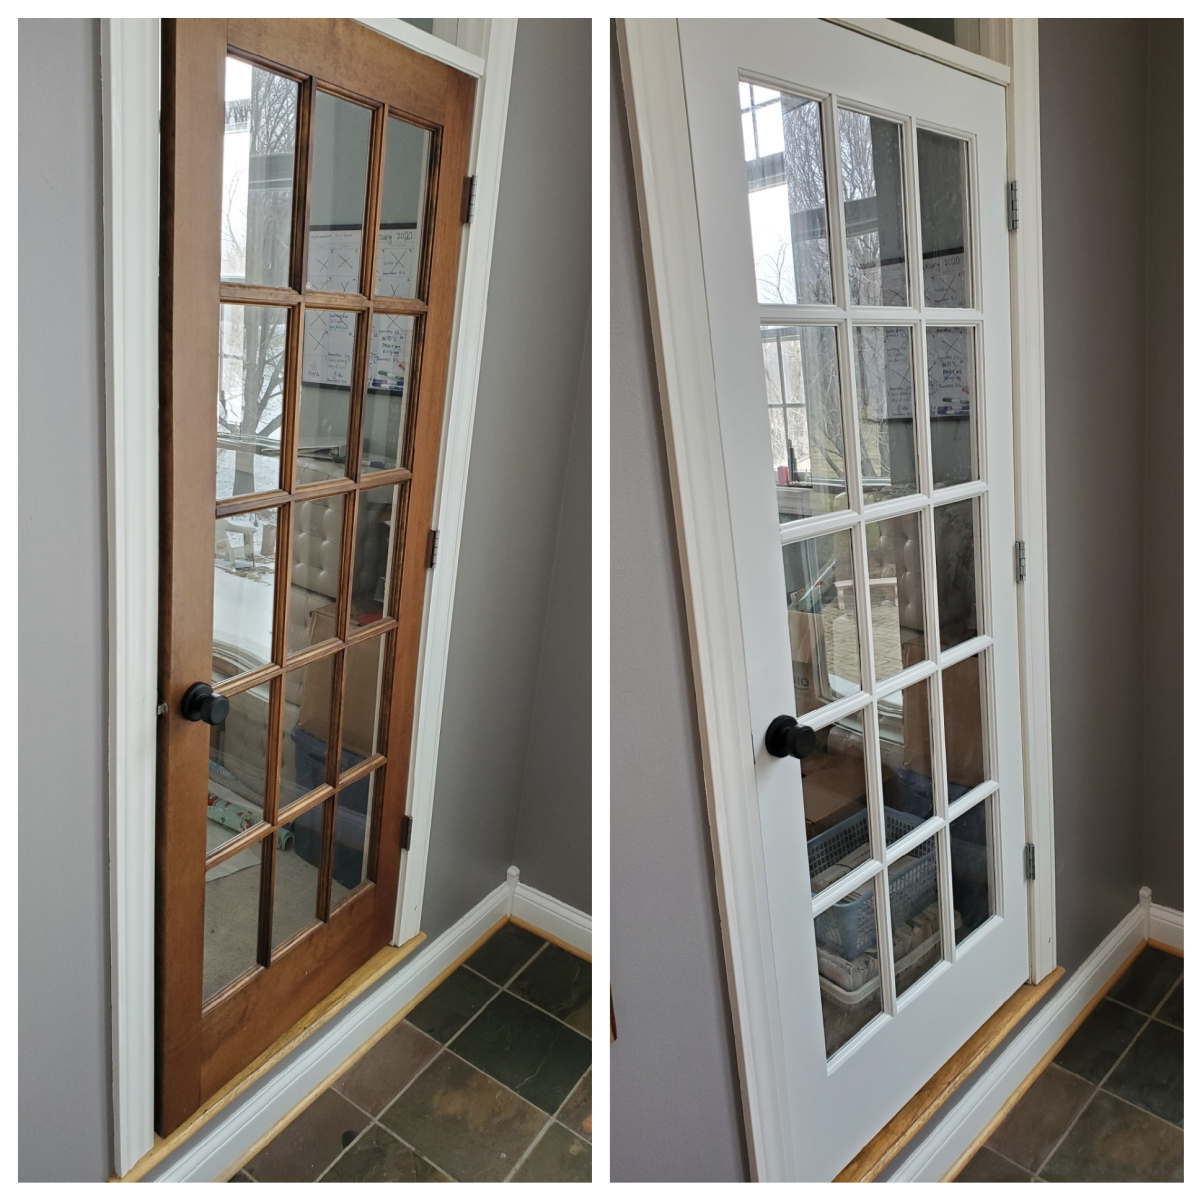 Another french door made of pine that I spray painted white.